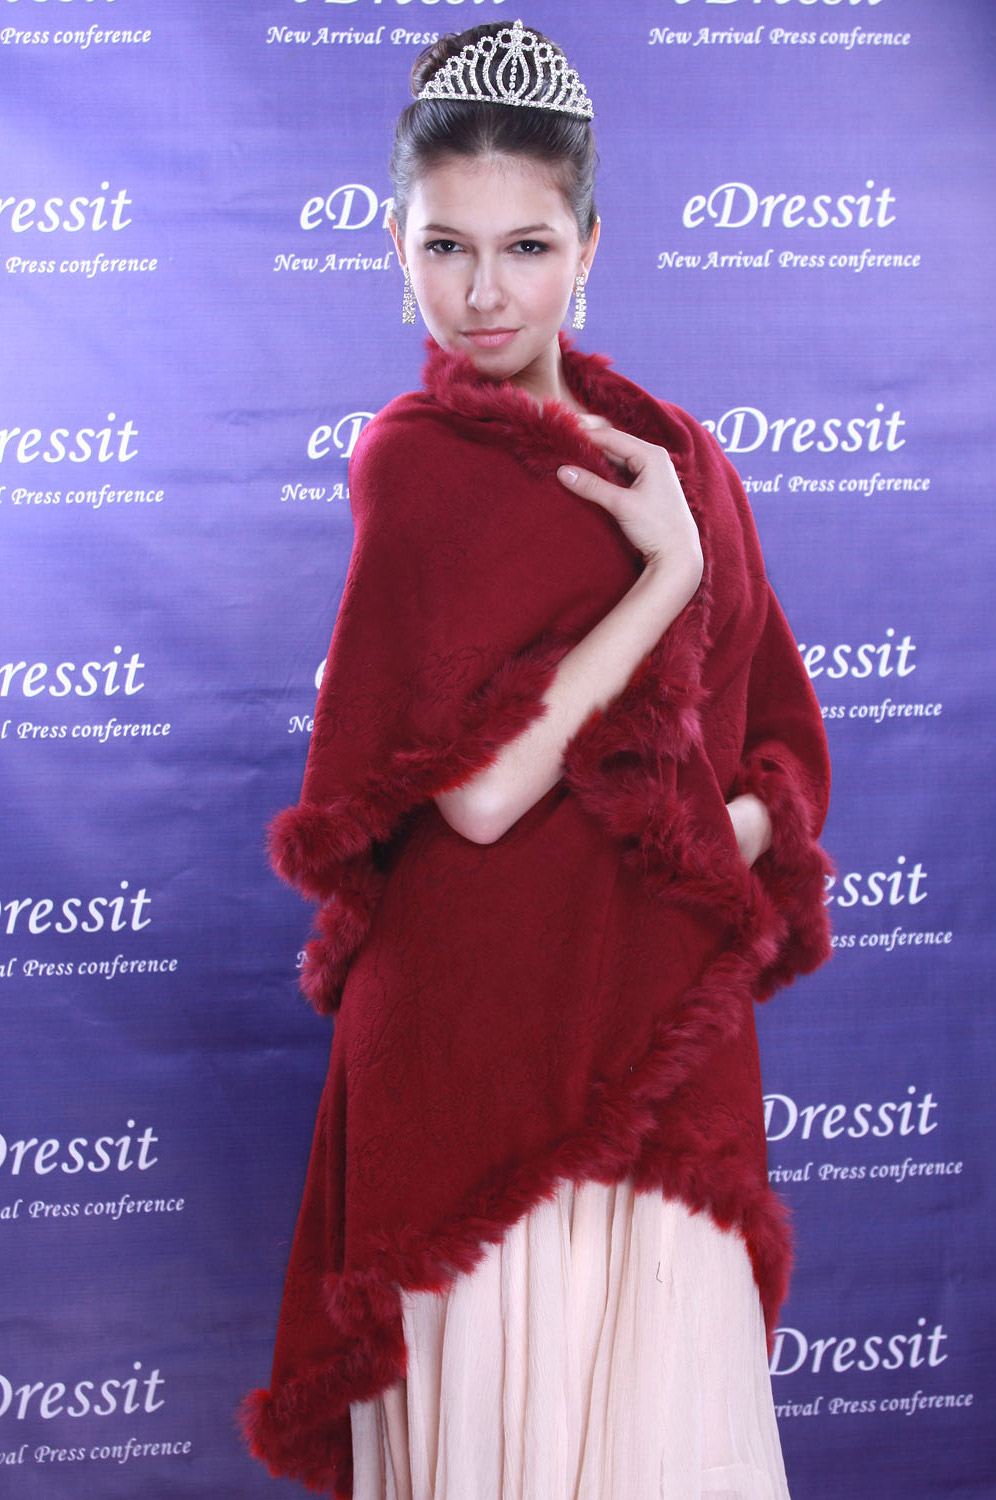 eDressit Deep Red Shawl/Wrapa/Bolero (14090217)